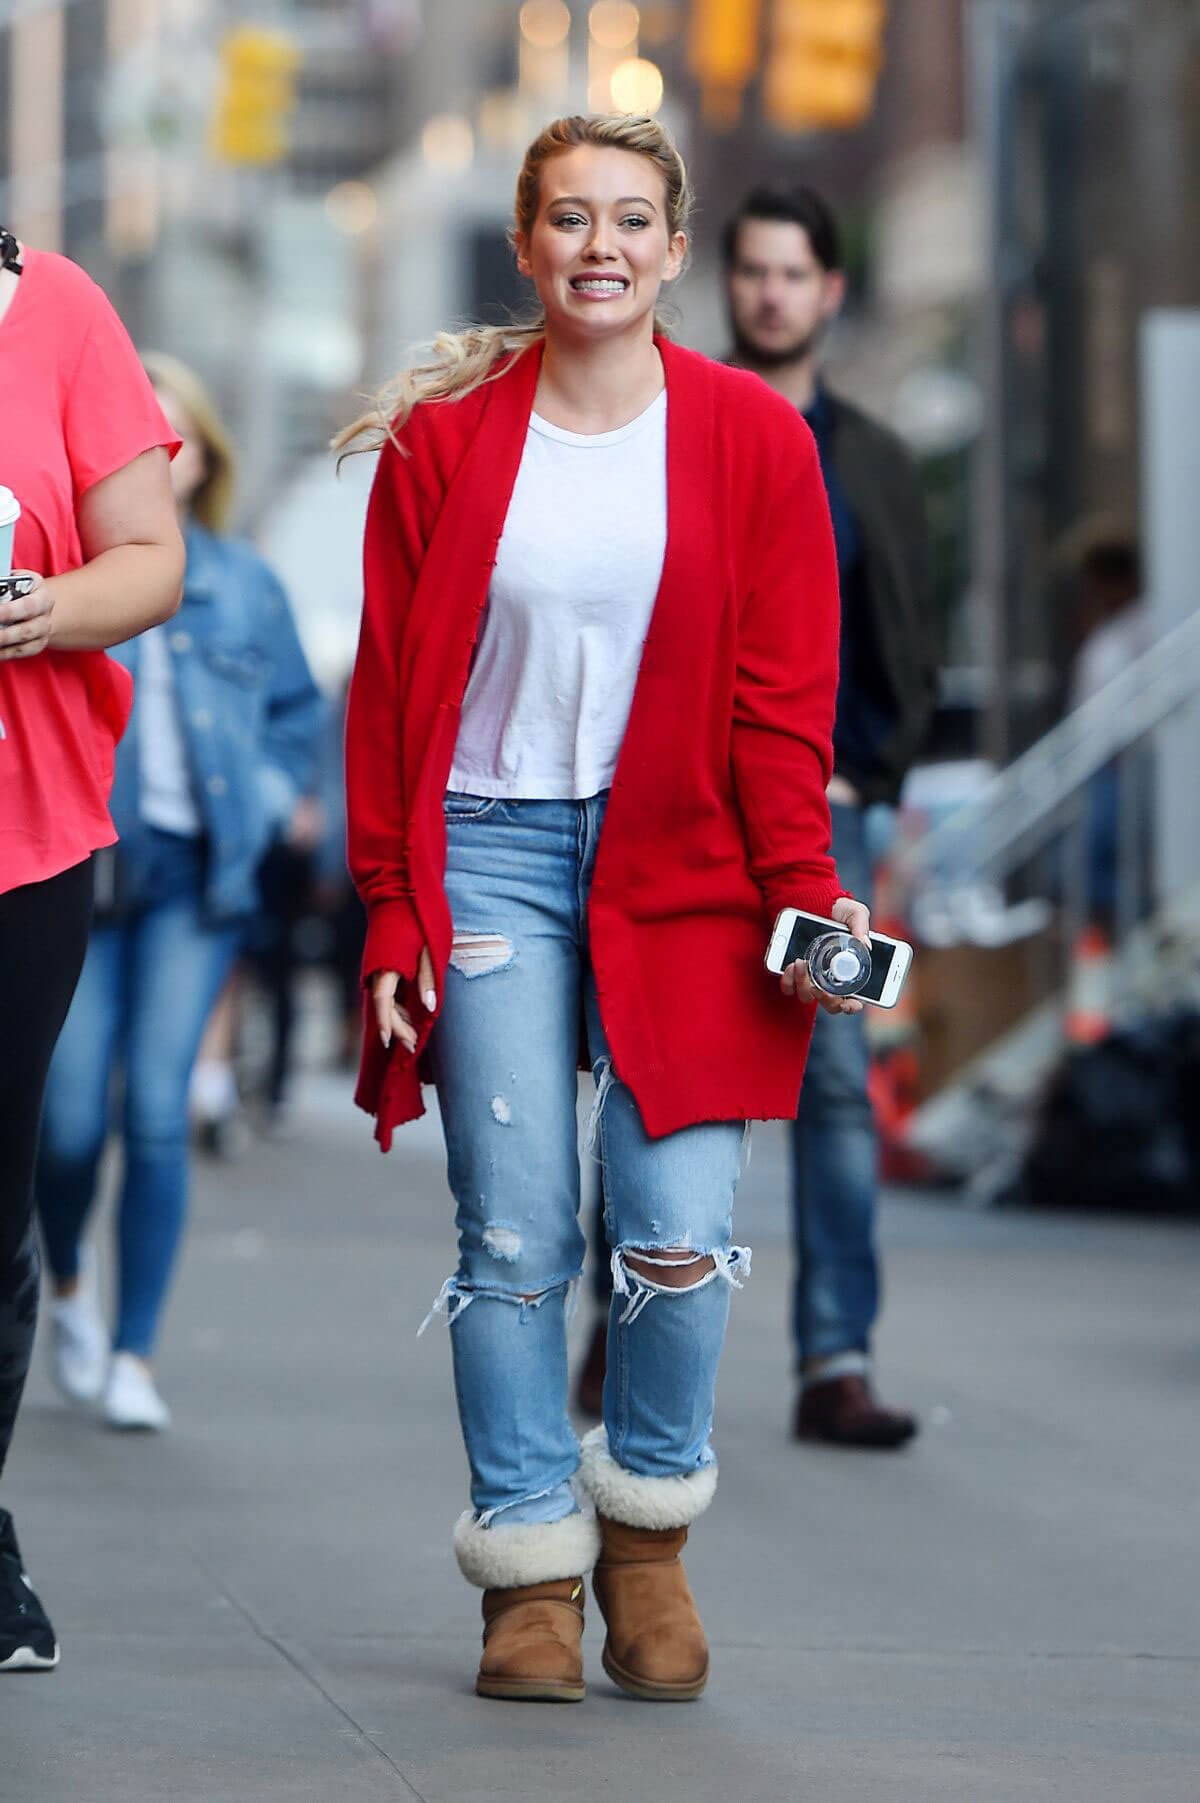 HILARY DUFF Arrives on the Set of Younger in New York